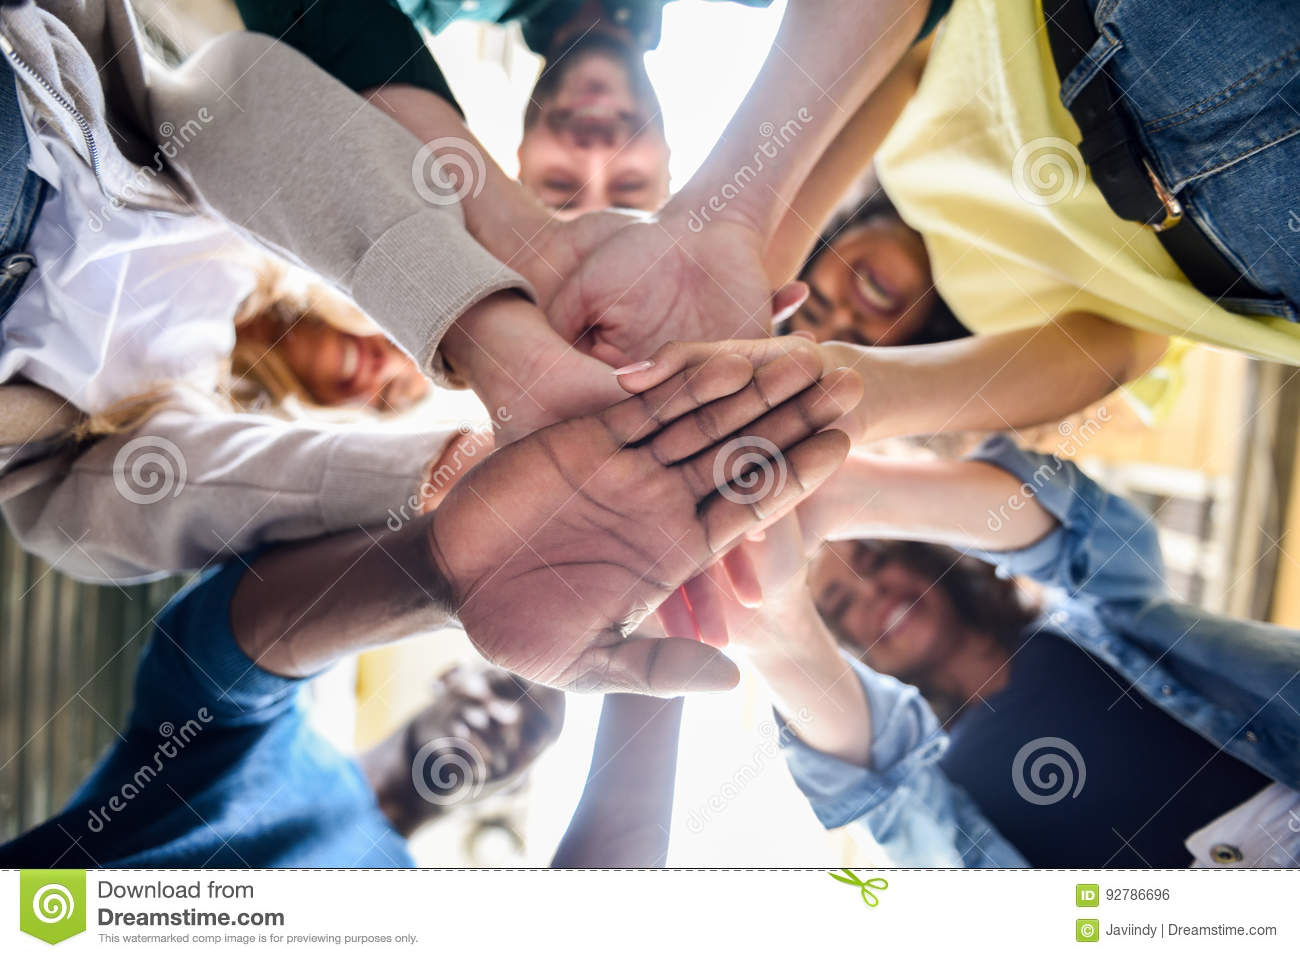 Young people putting their hands together.